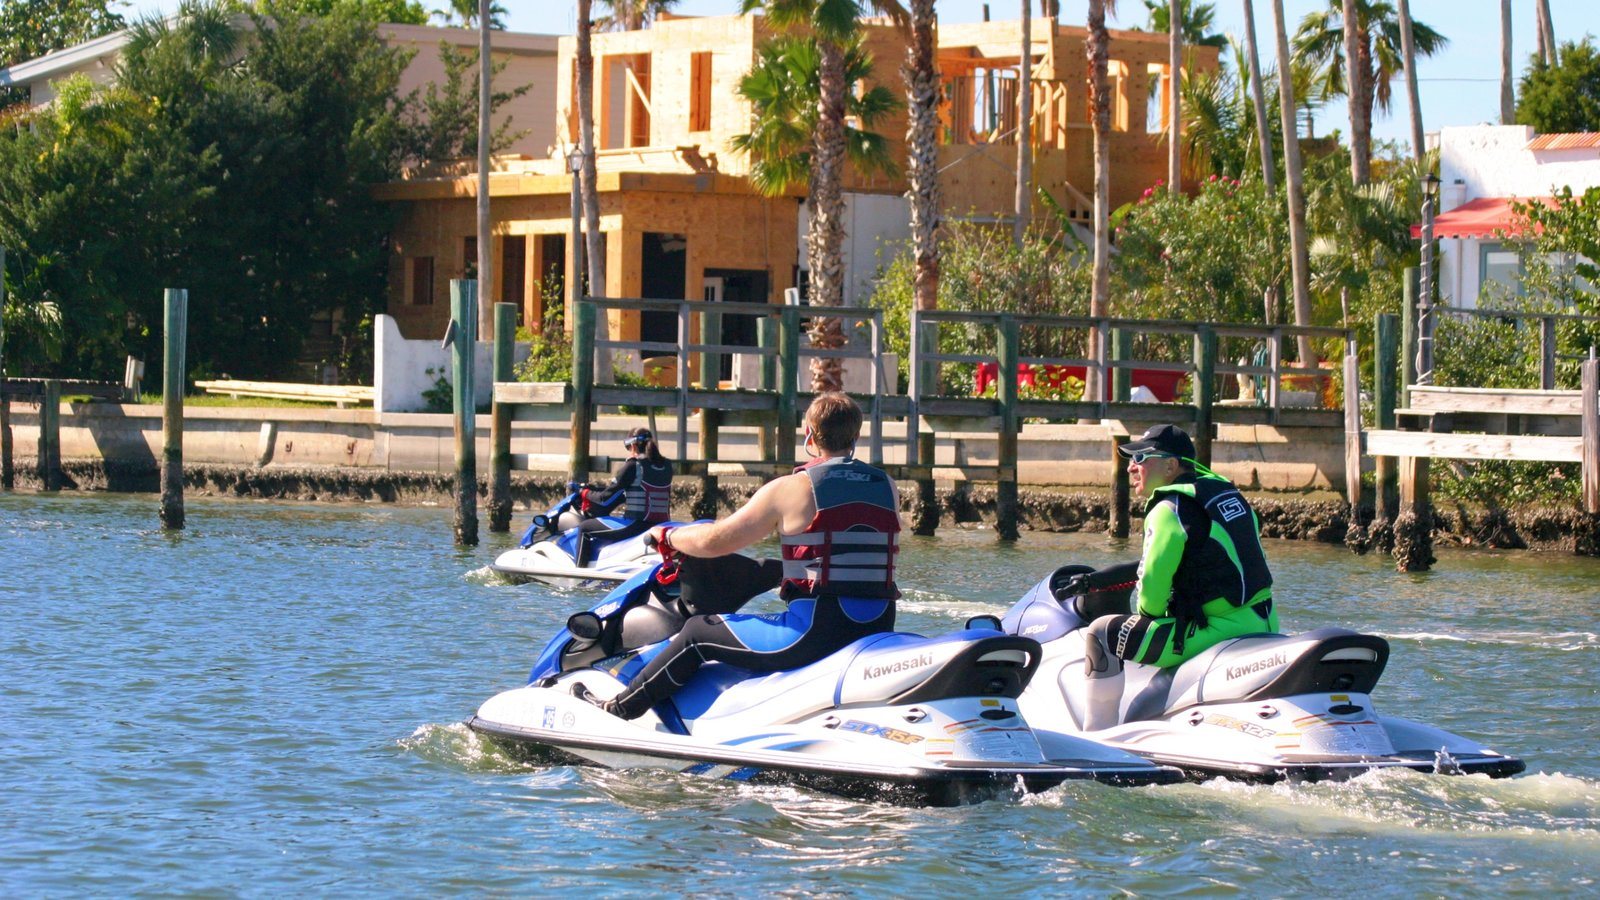 St. Petersburg - Clearwater which includes jet skiing, a sporting event and a bay or harbor